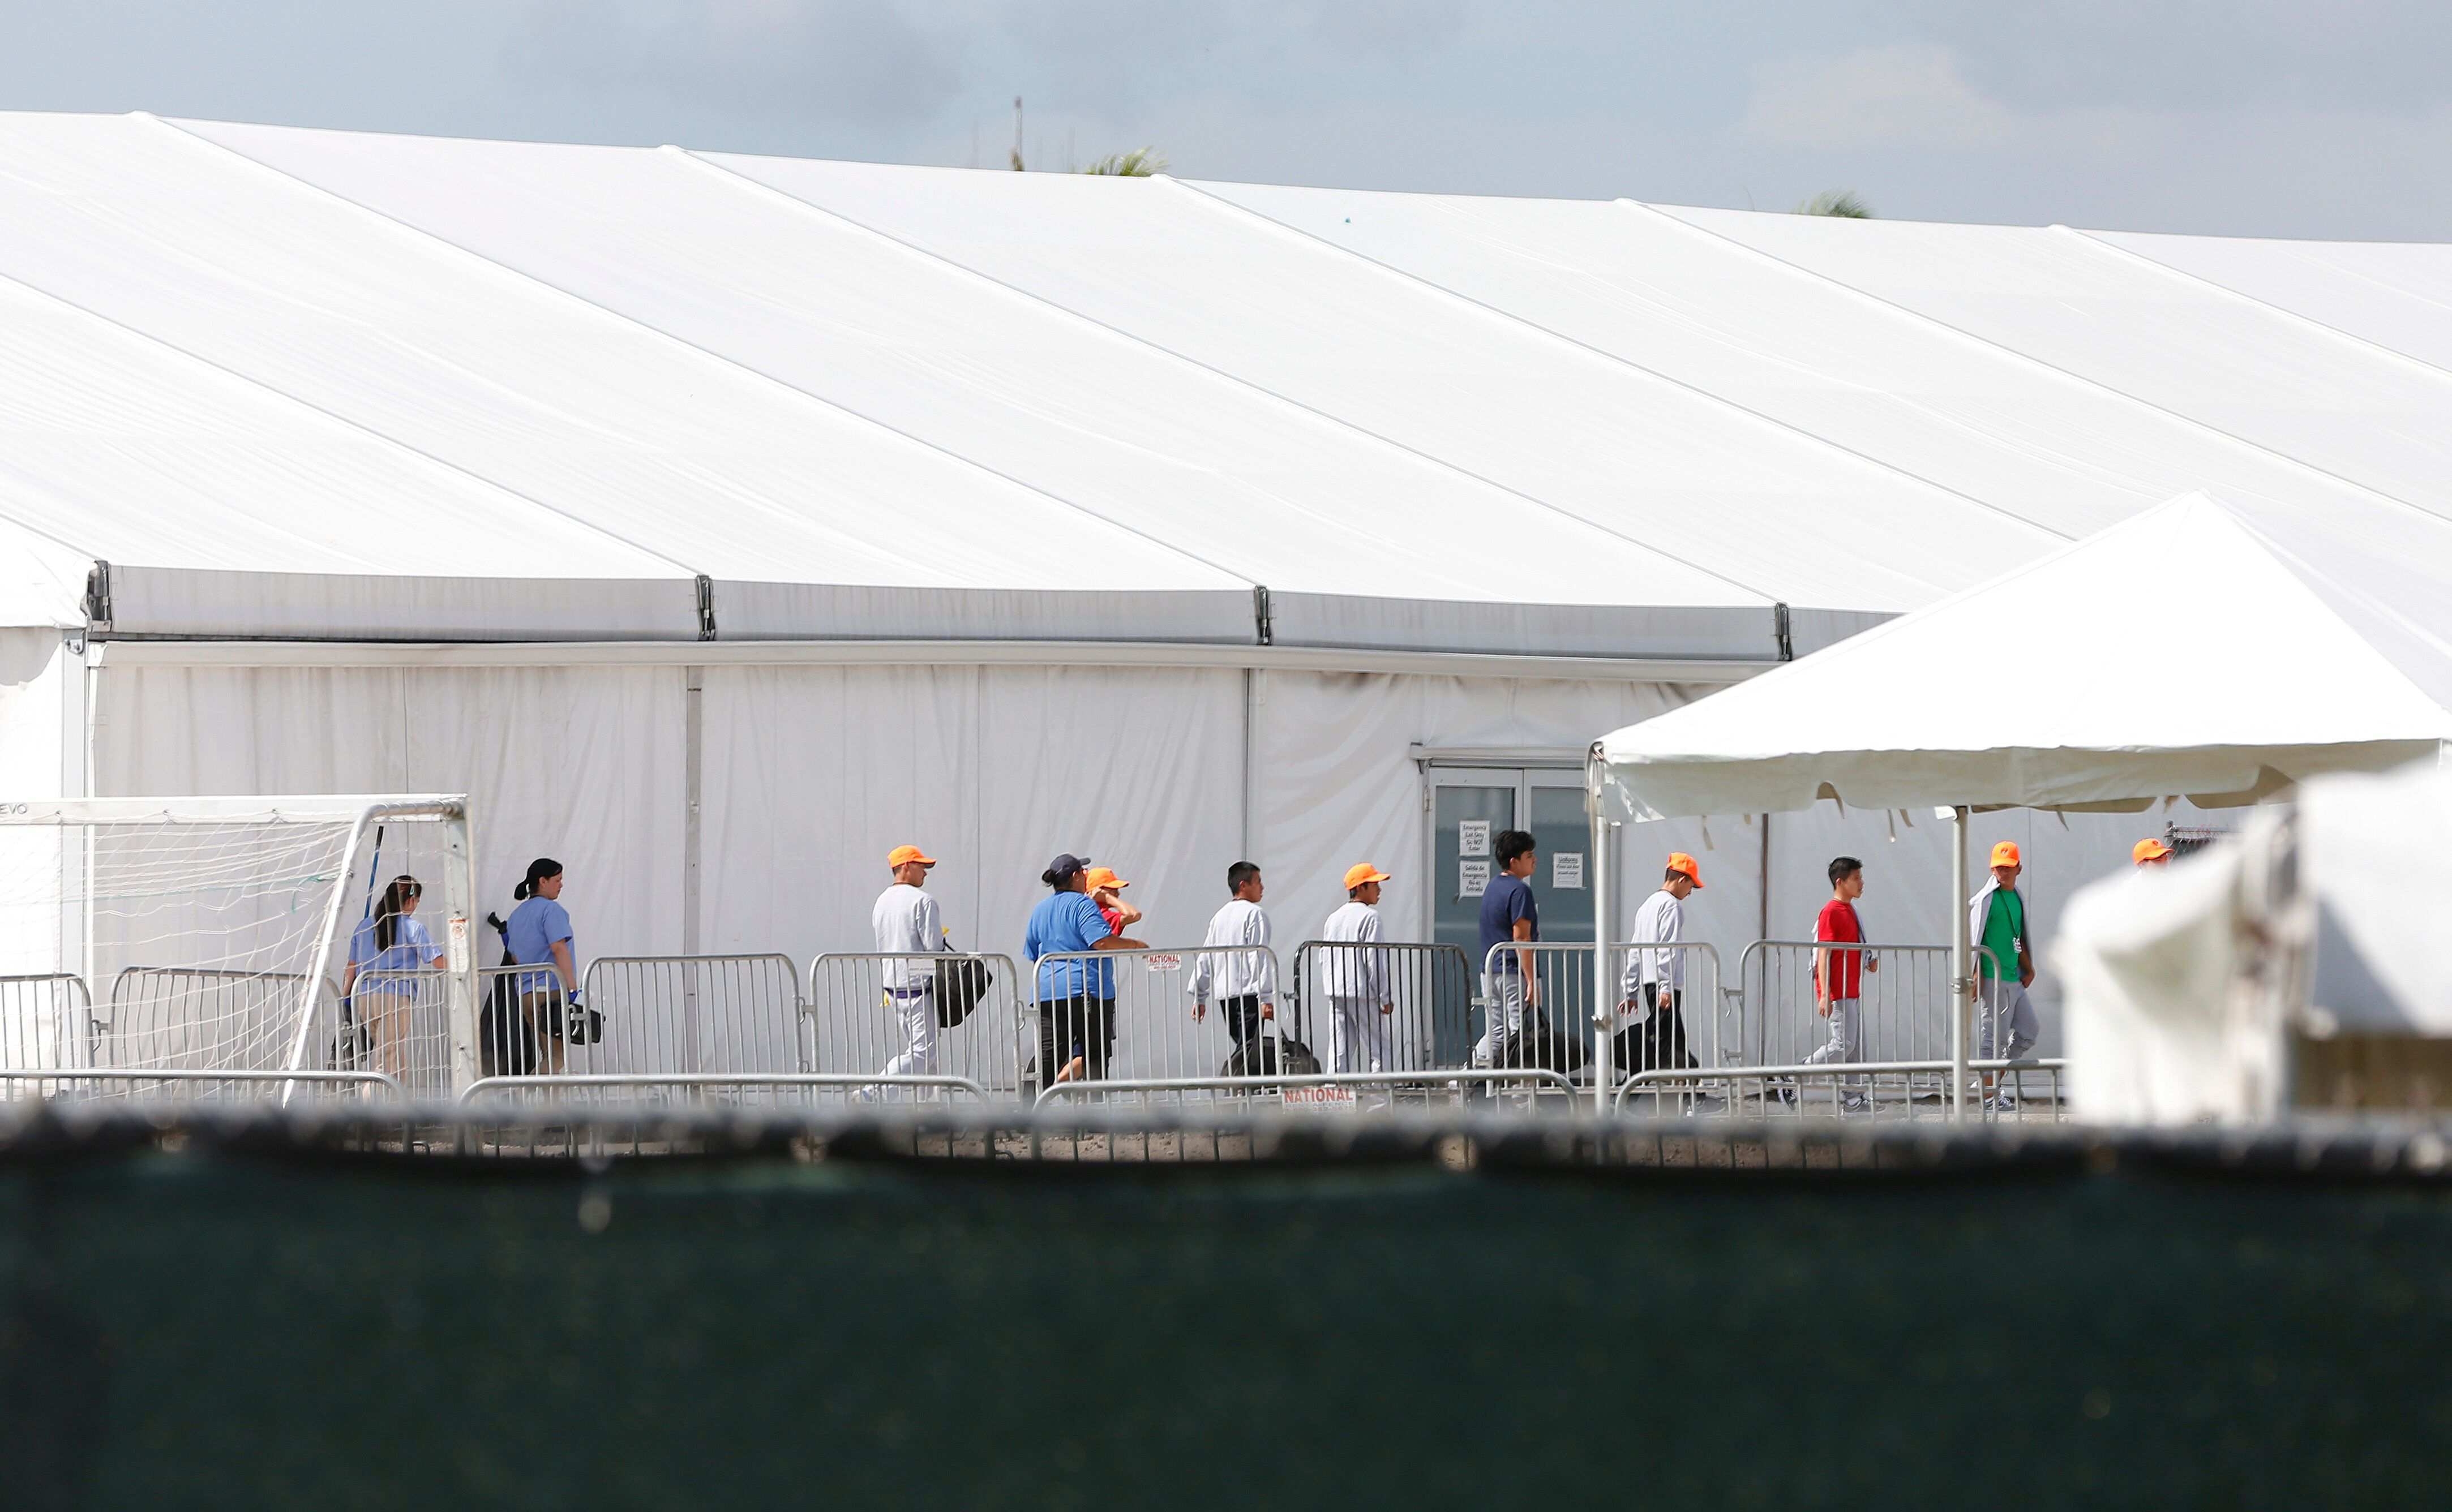 Migrant children separated from their families walk past tents at a detention center in Homestead, Florida on June 27, 2019.